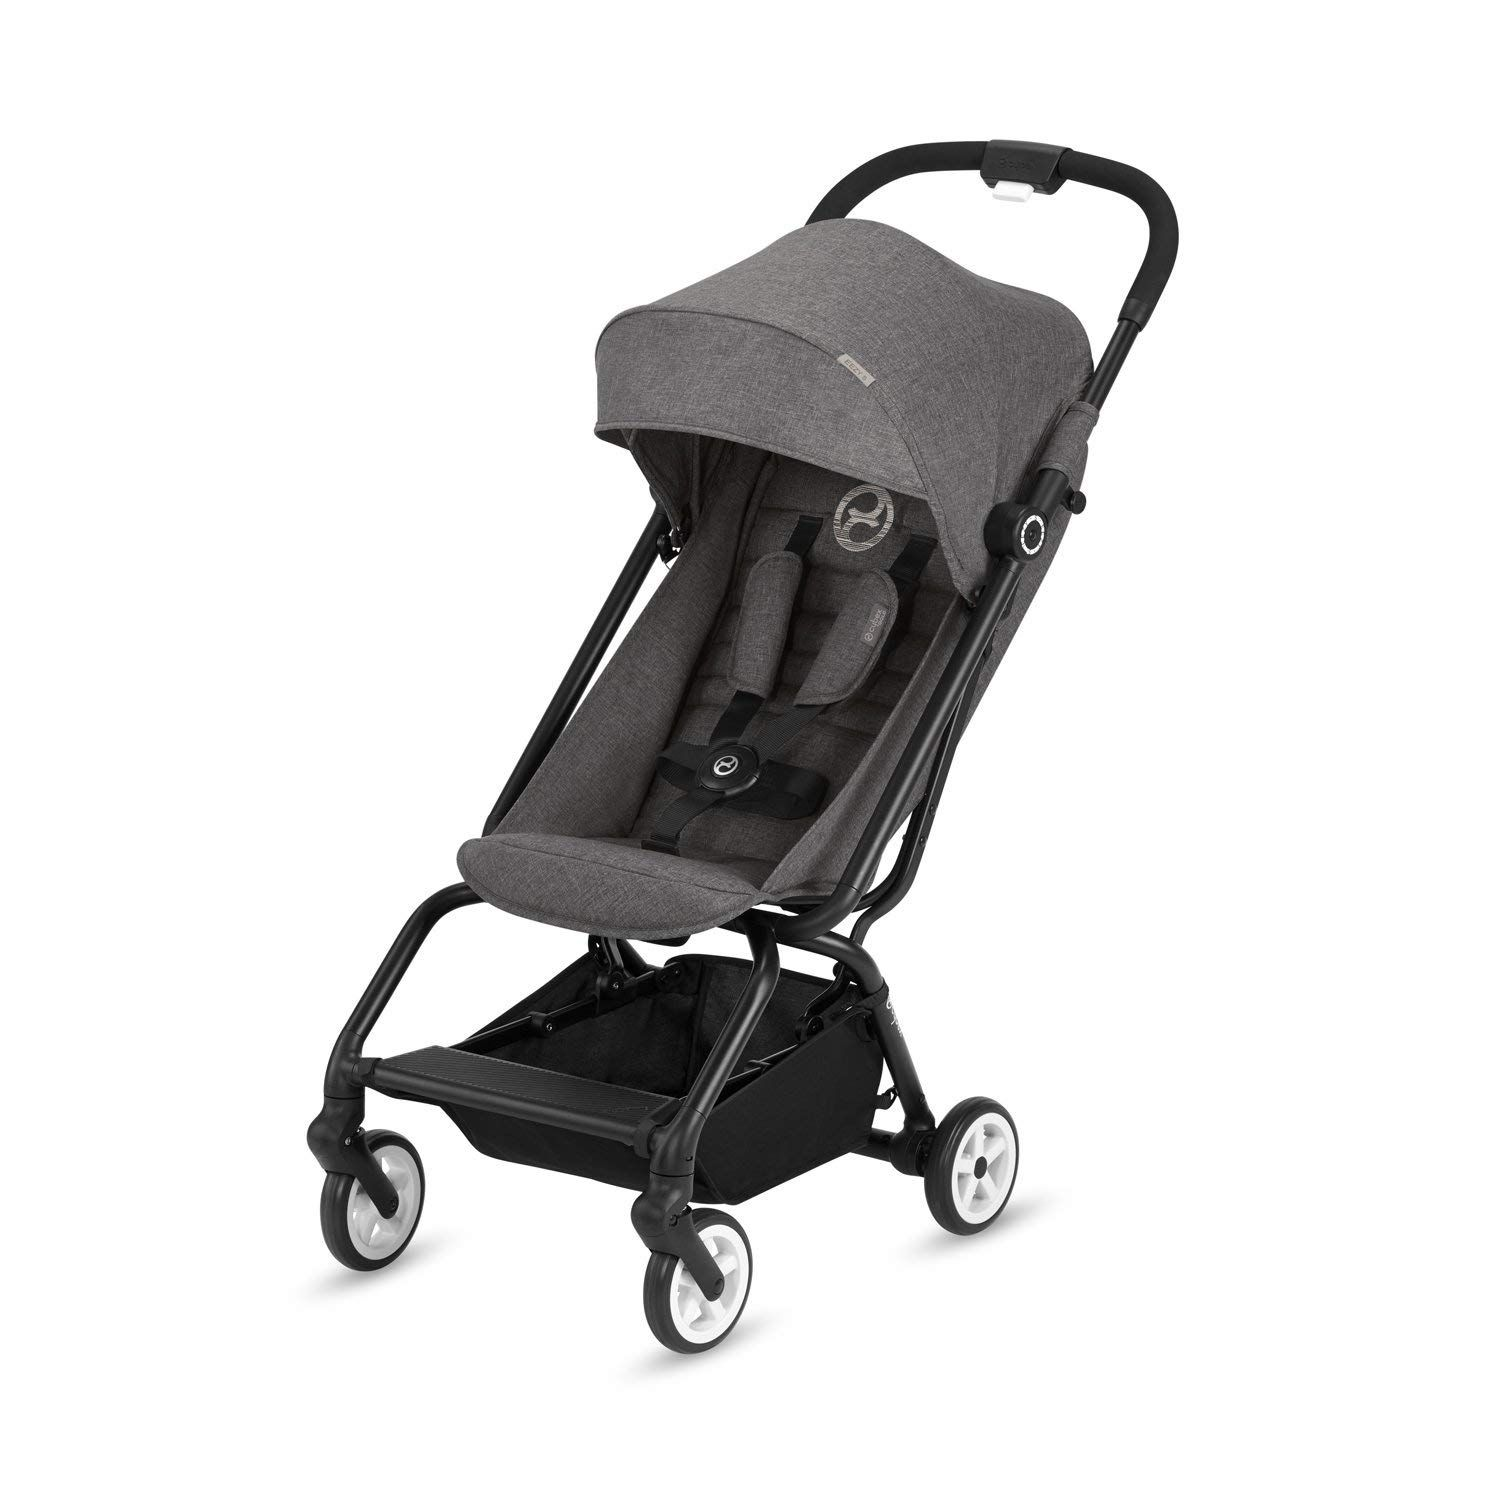 Cybex Gold Pushchair Suitable from birth when used with